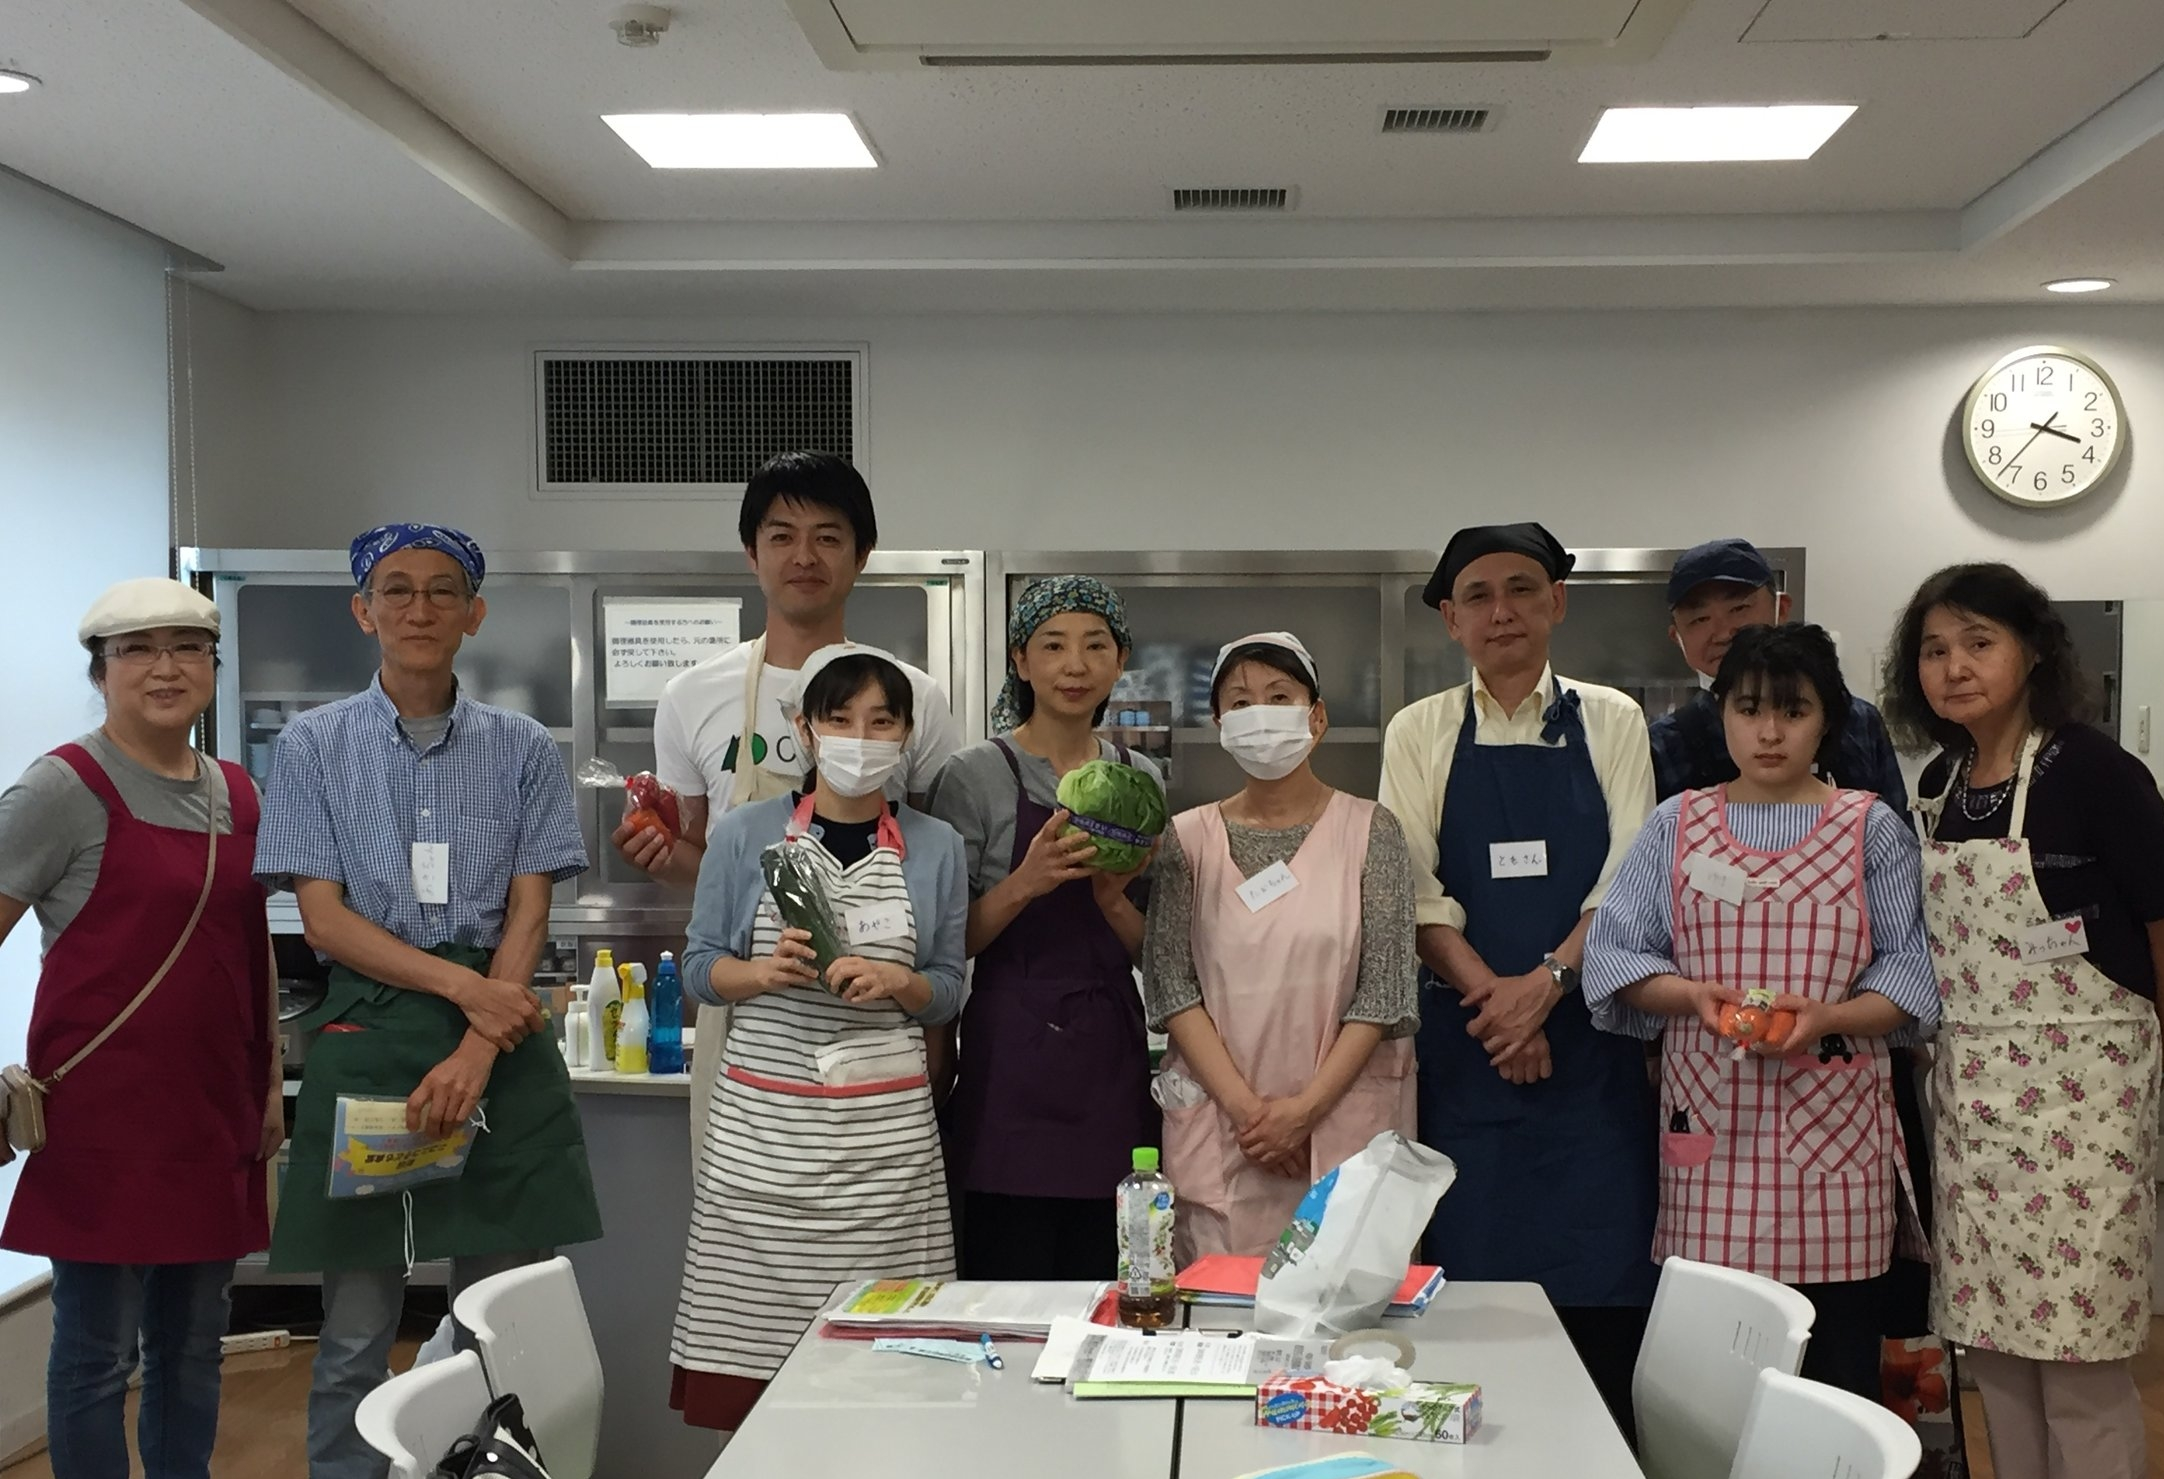 """Members of PaperSeed japan alongside other volunteers making dinner with the charity """"Children's Dinner"""" for PaperSeed Day 2017"""